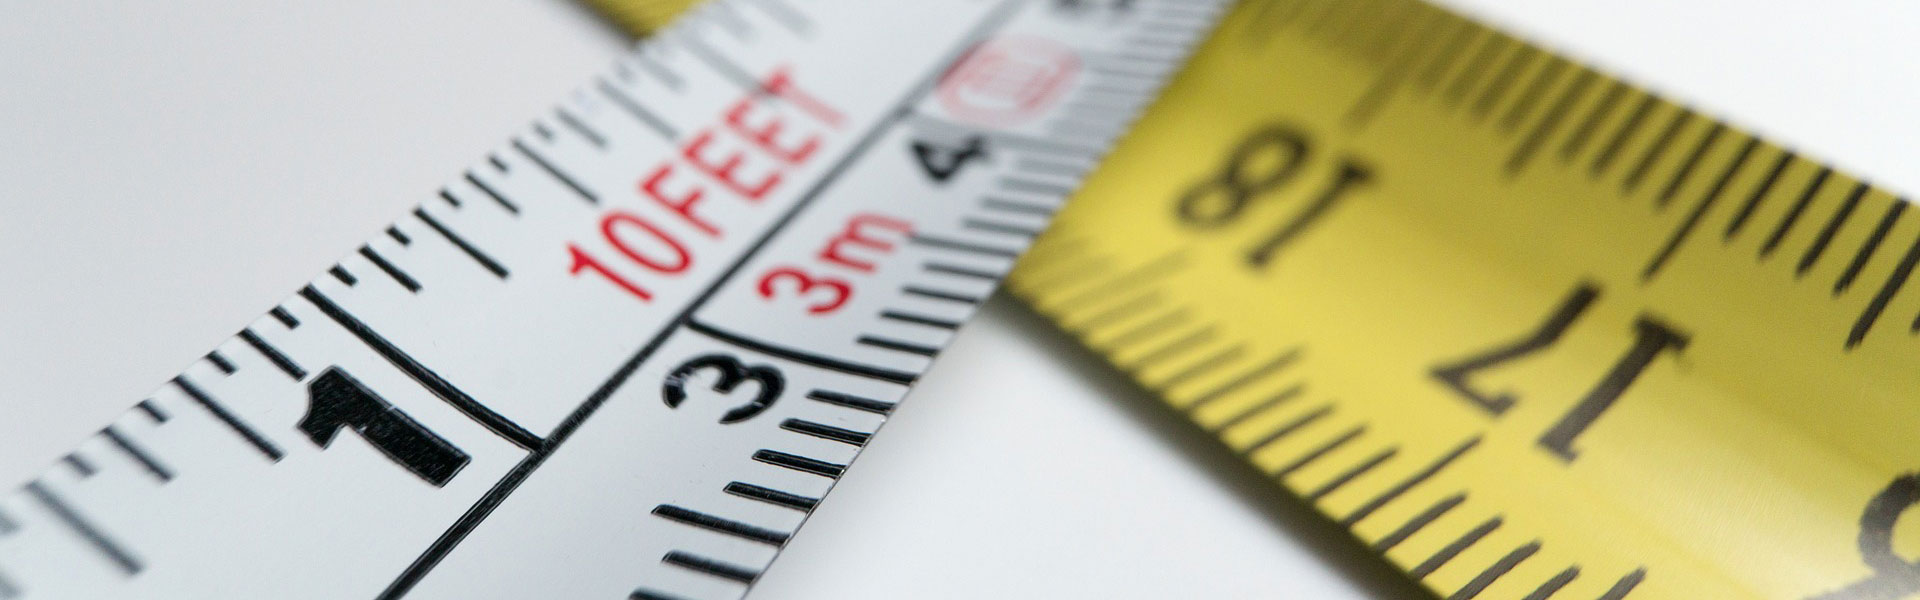 What Are KPIs and Why Do I Need Them?